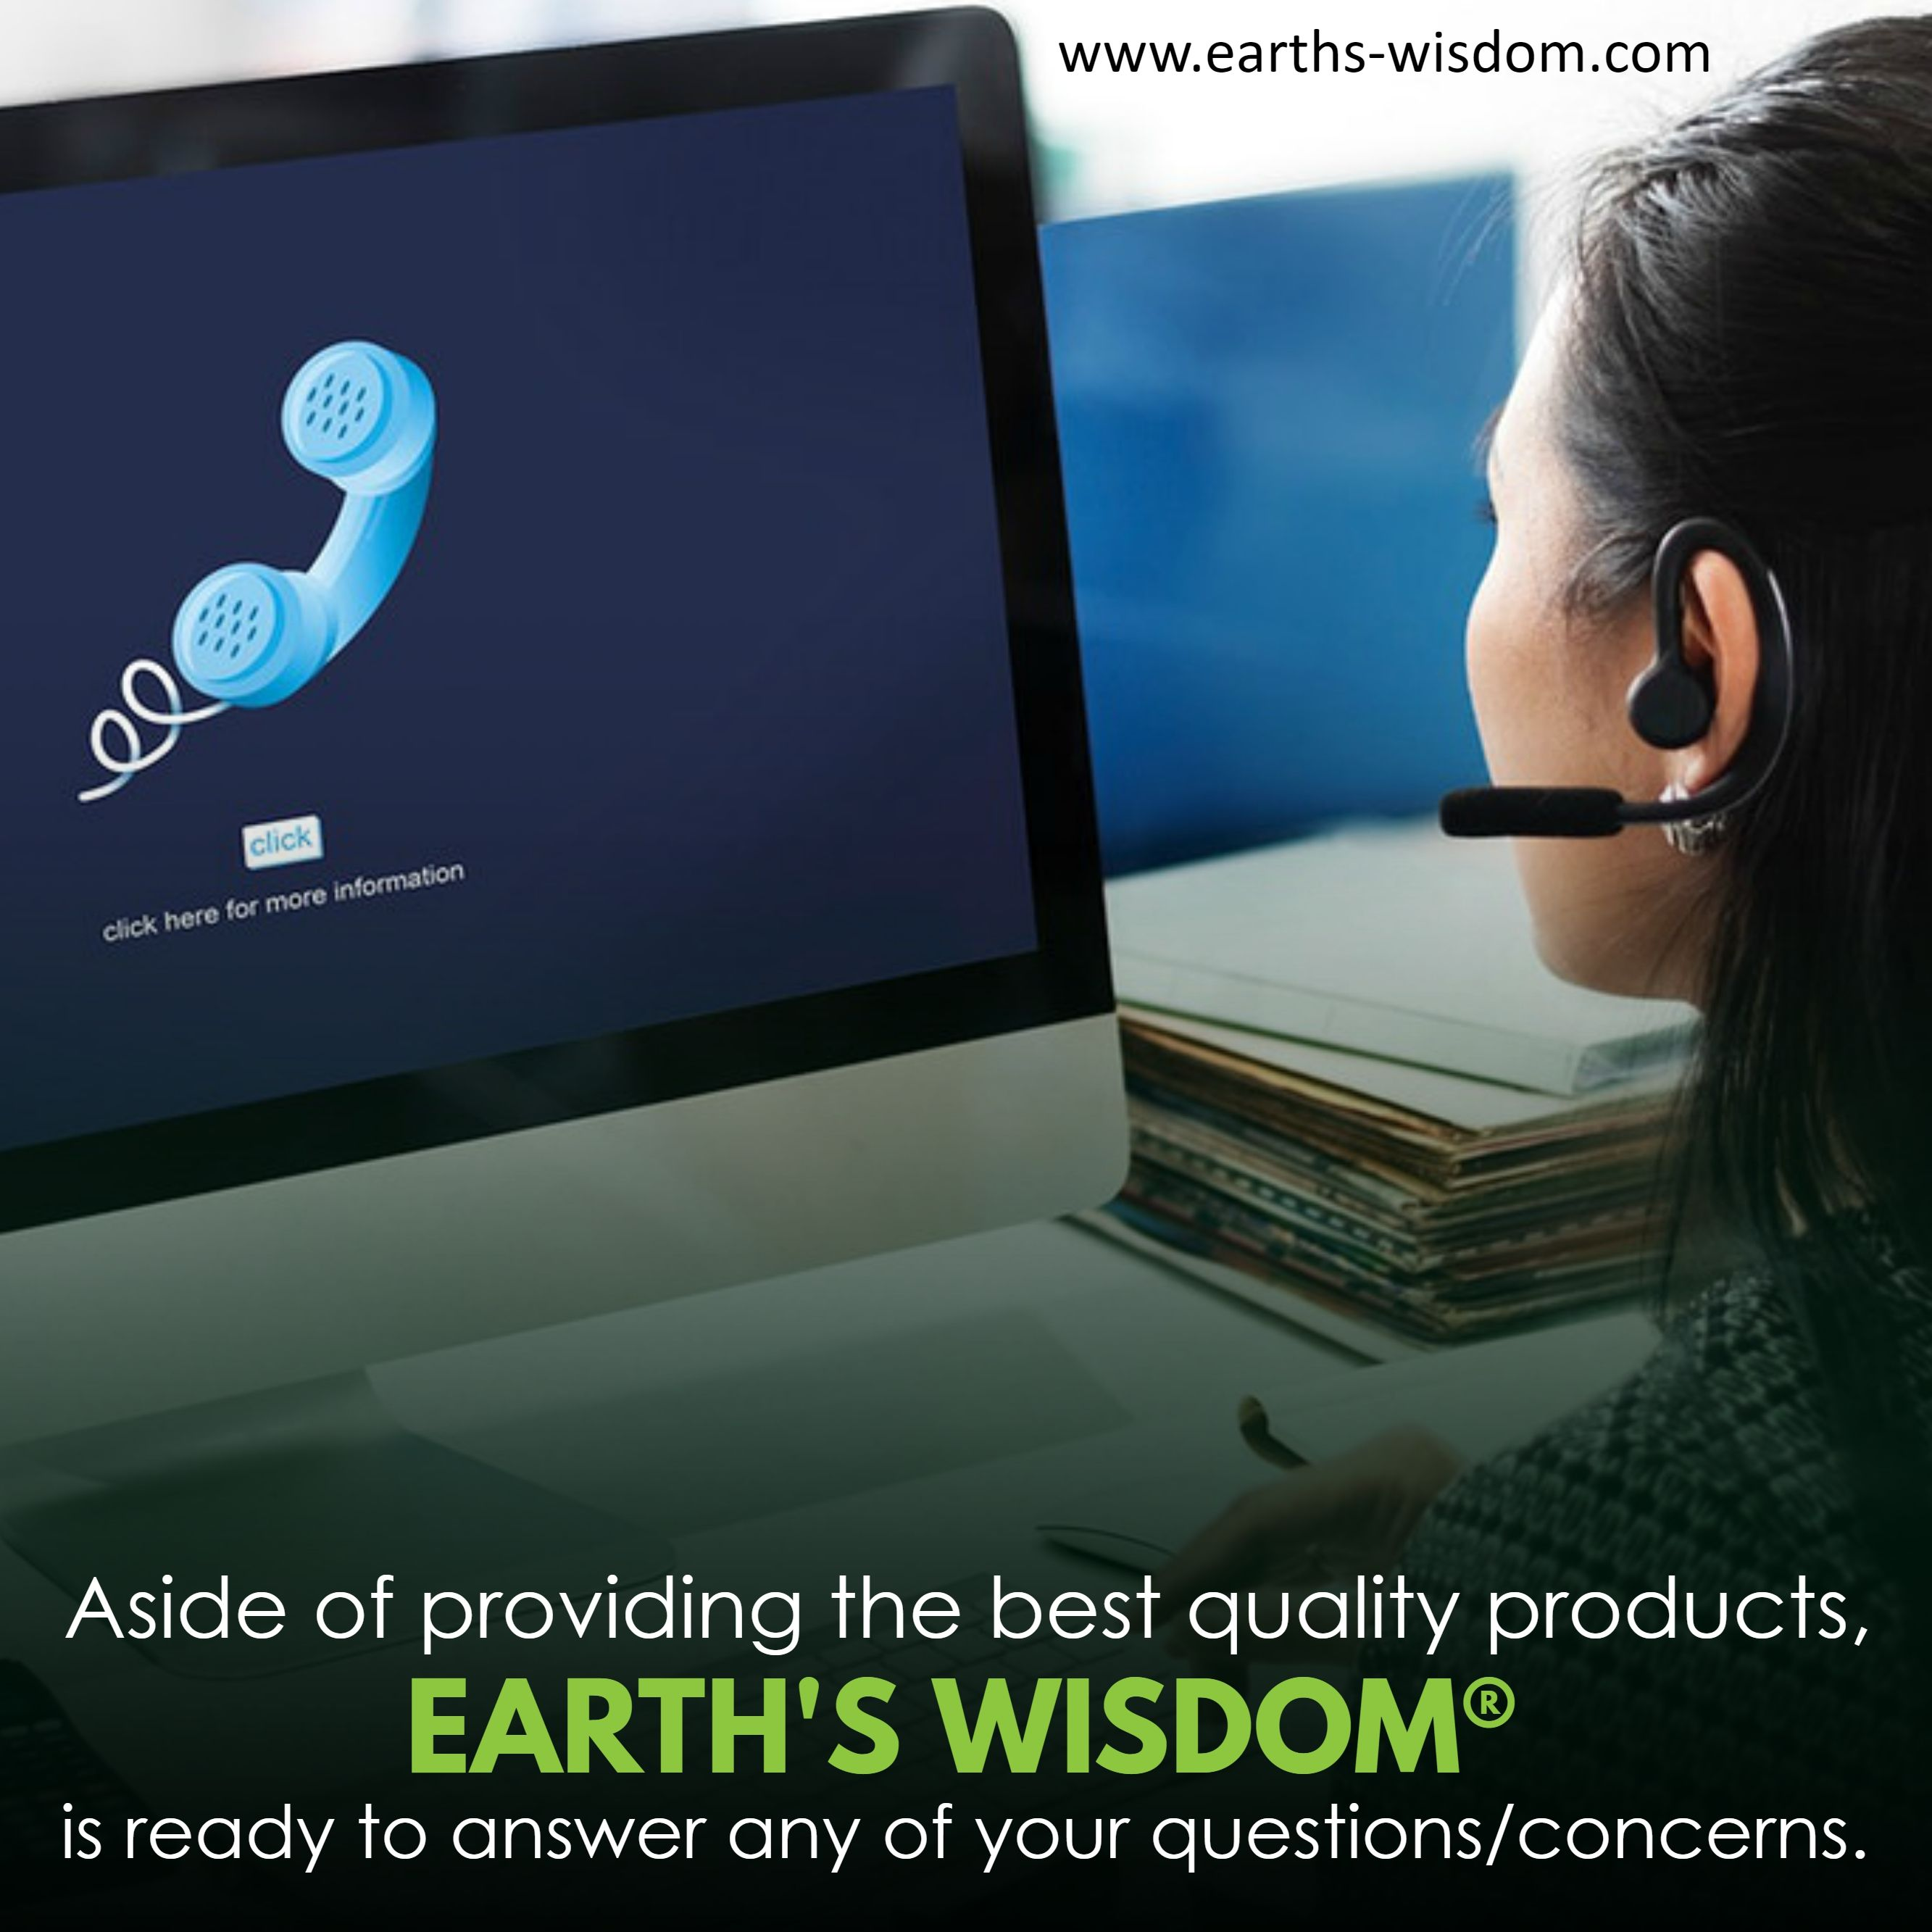 Aside of providing the best quality products, Earth's Wisdom® is ready to answer any of your questio...